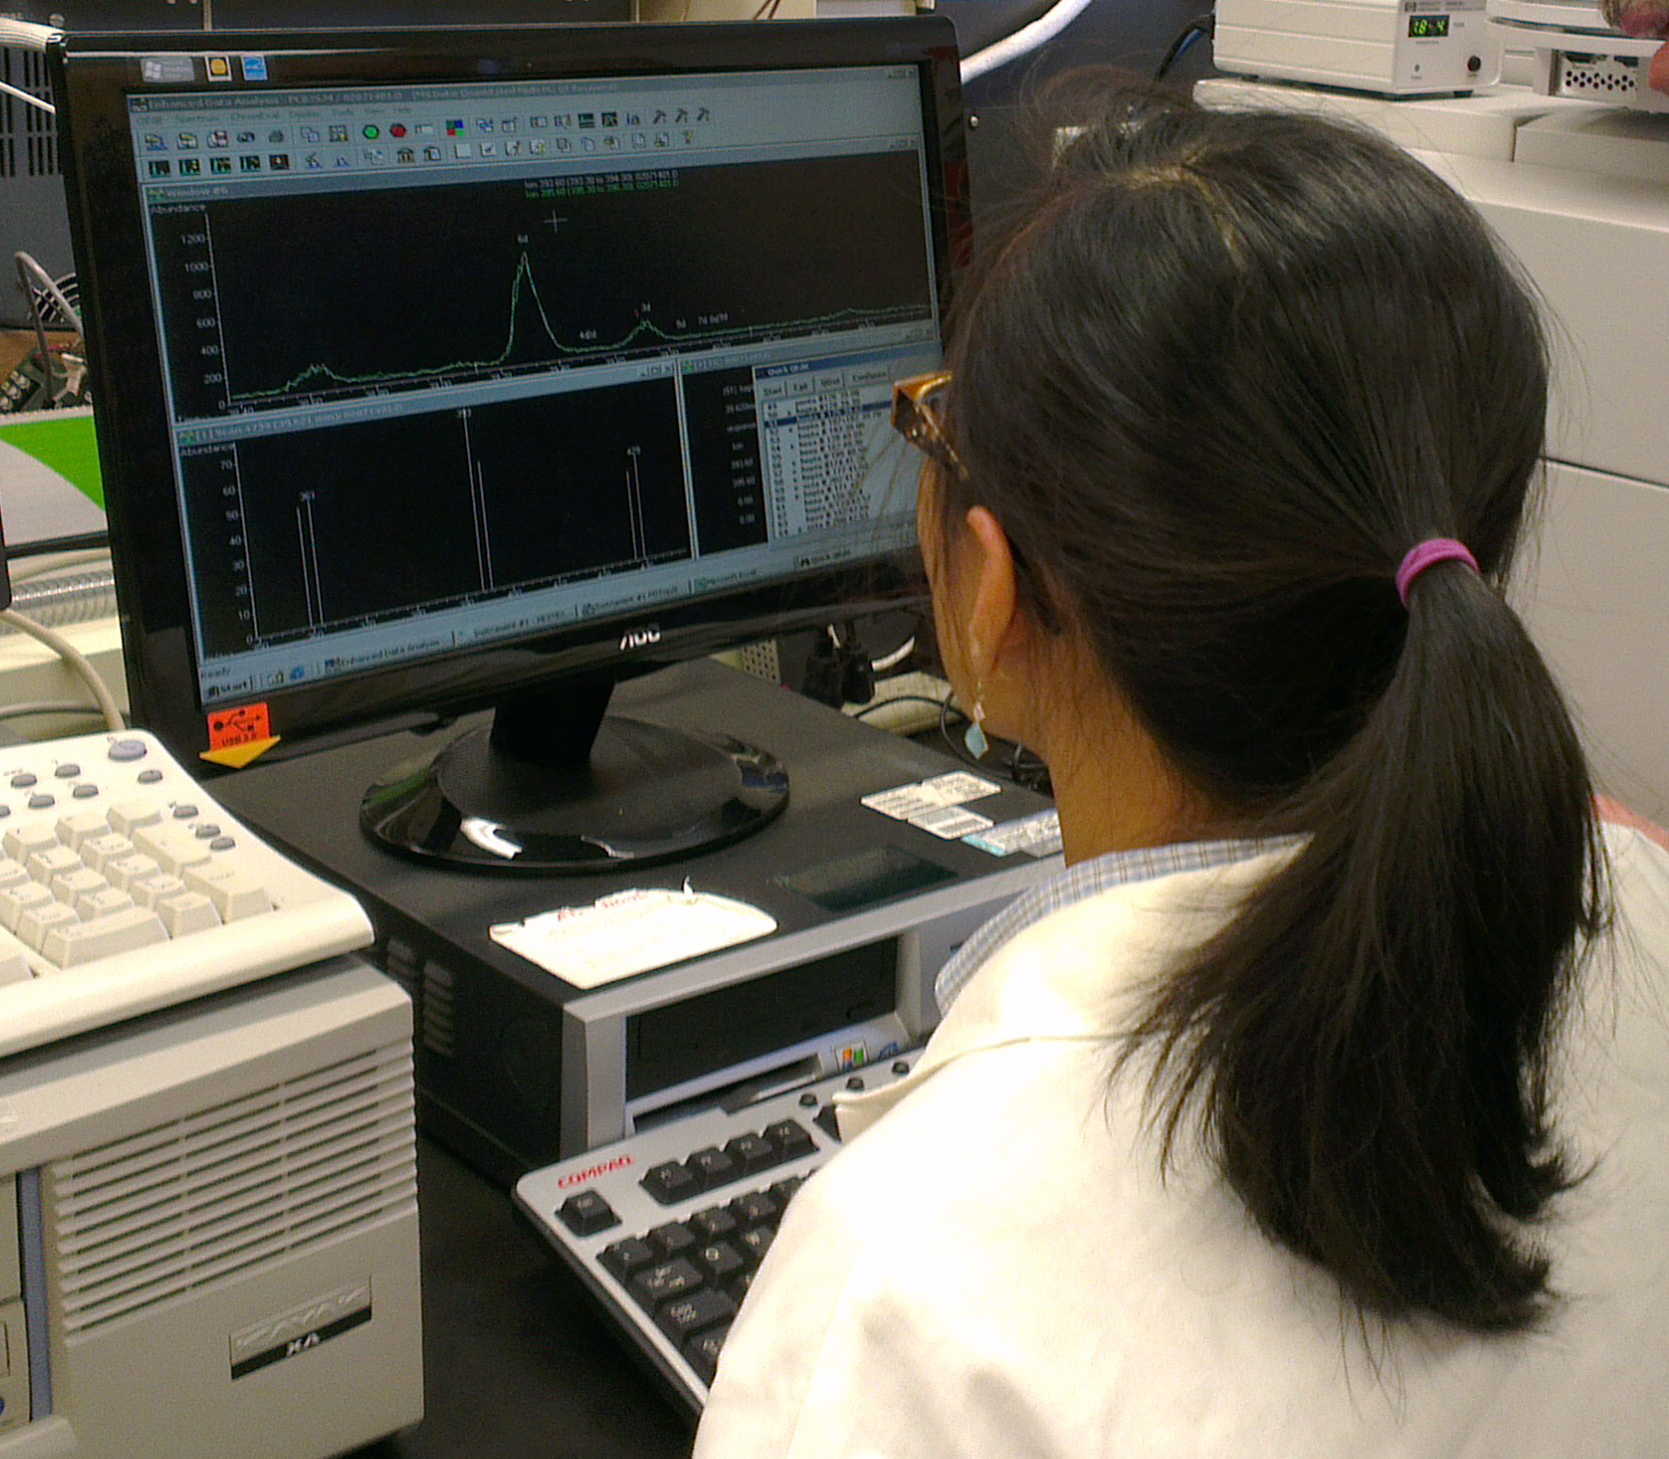 For analyte separation and quantification we use a Hewlett-Packard HP 5973 gas chromatograph/ mass spectrometry.  The detector is a mass-selective detector operated in the negative chemical ionization, selected-ion monitoring mode.  Chromatogram analyzed by chemists from SPH, represents the pesticide fraction of persistent organic contaminants.